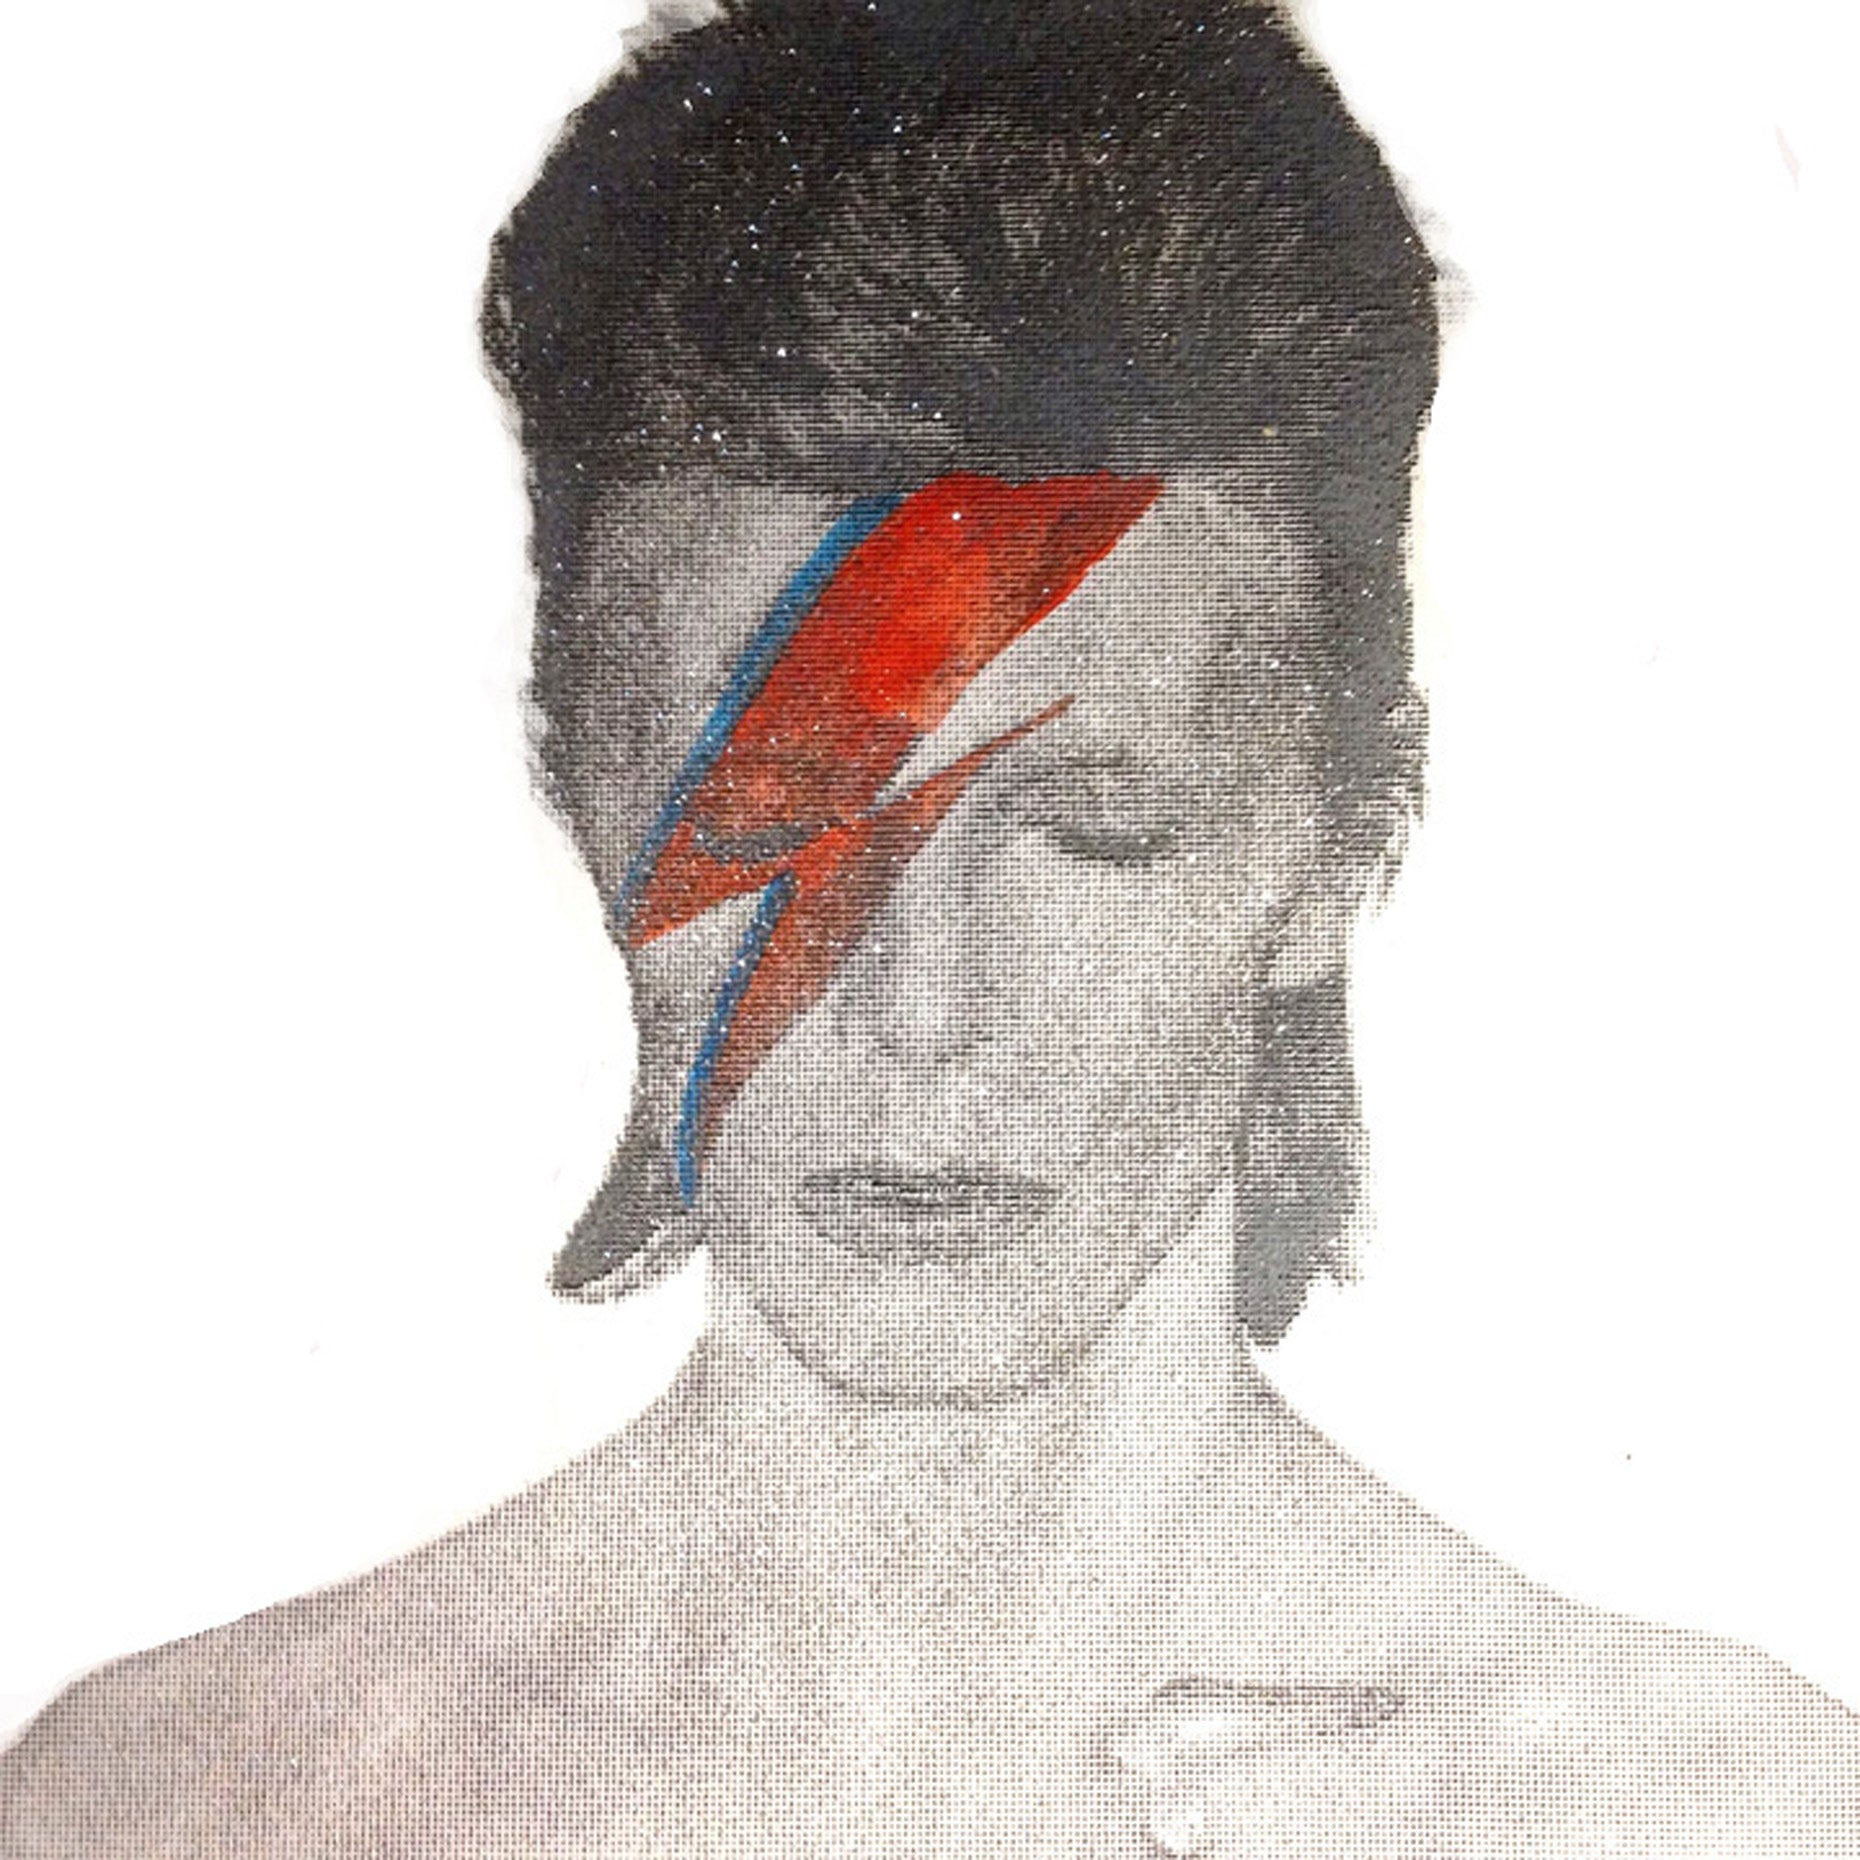 David Bowie Aladdin Sane Diamond Dust Print